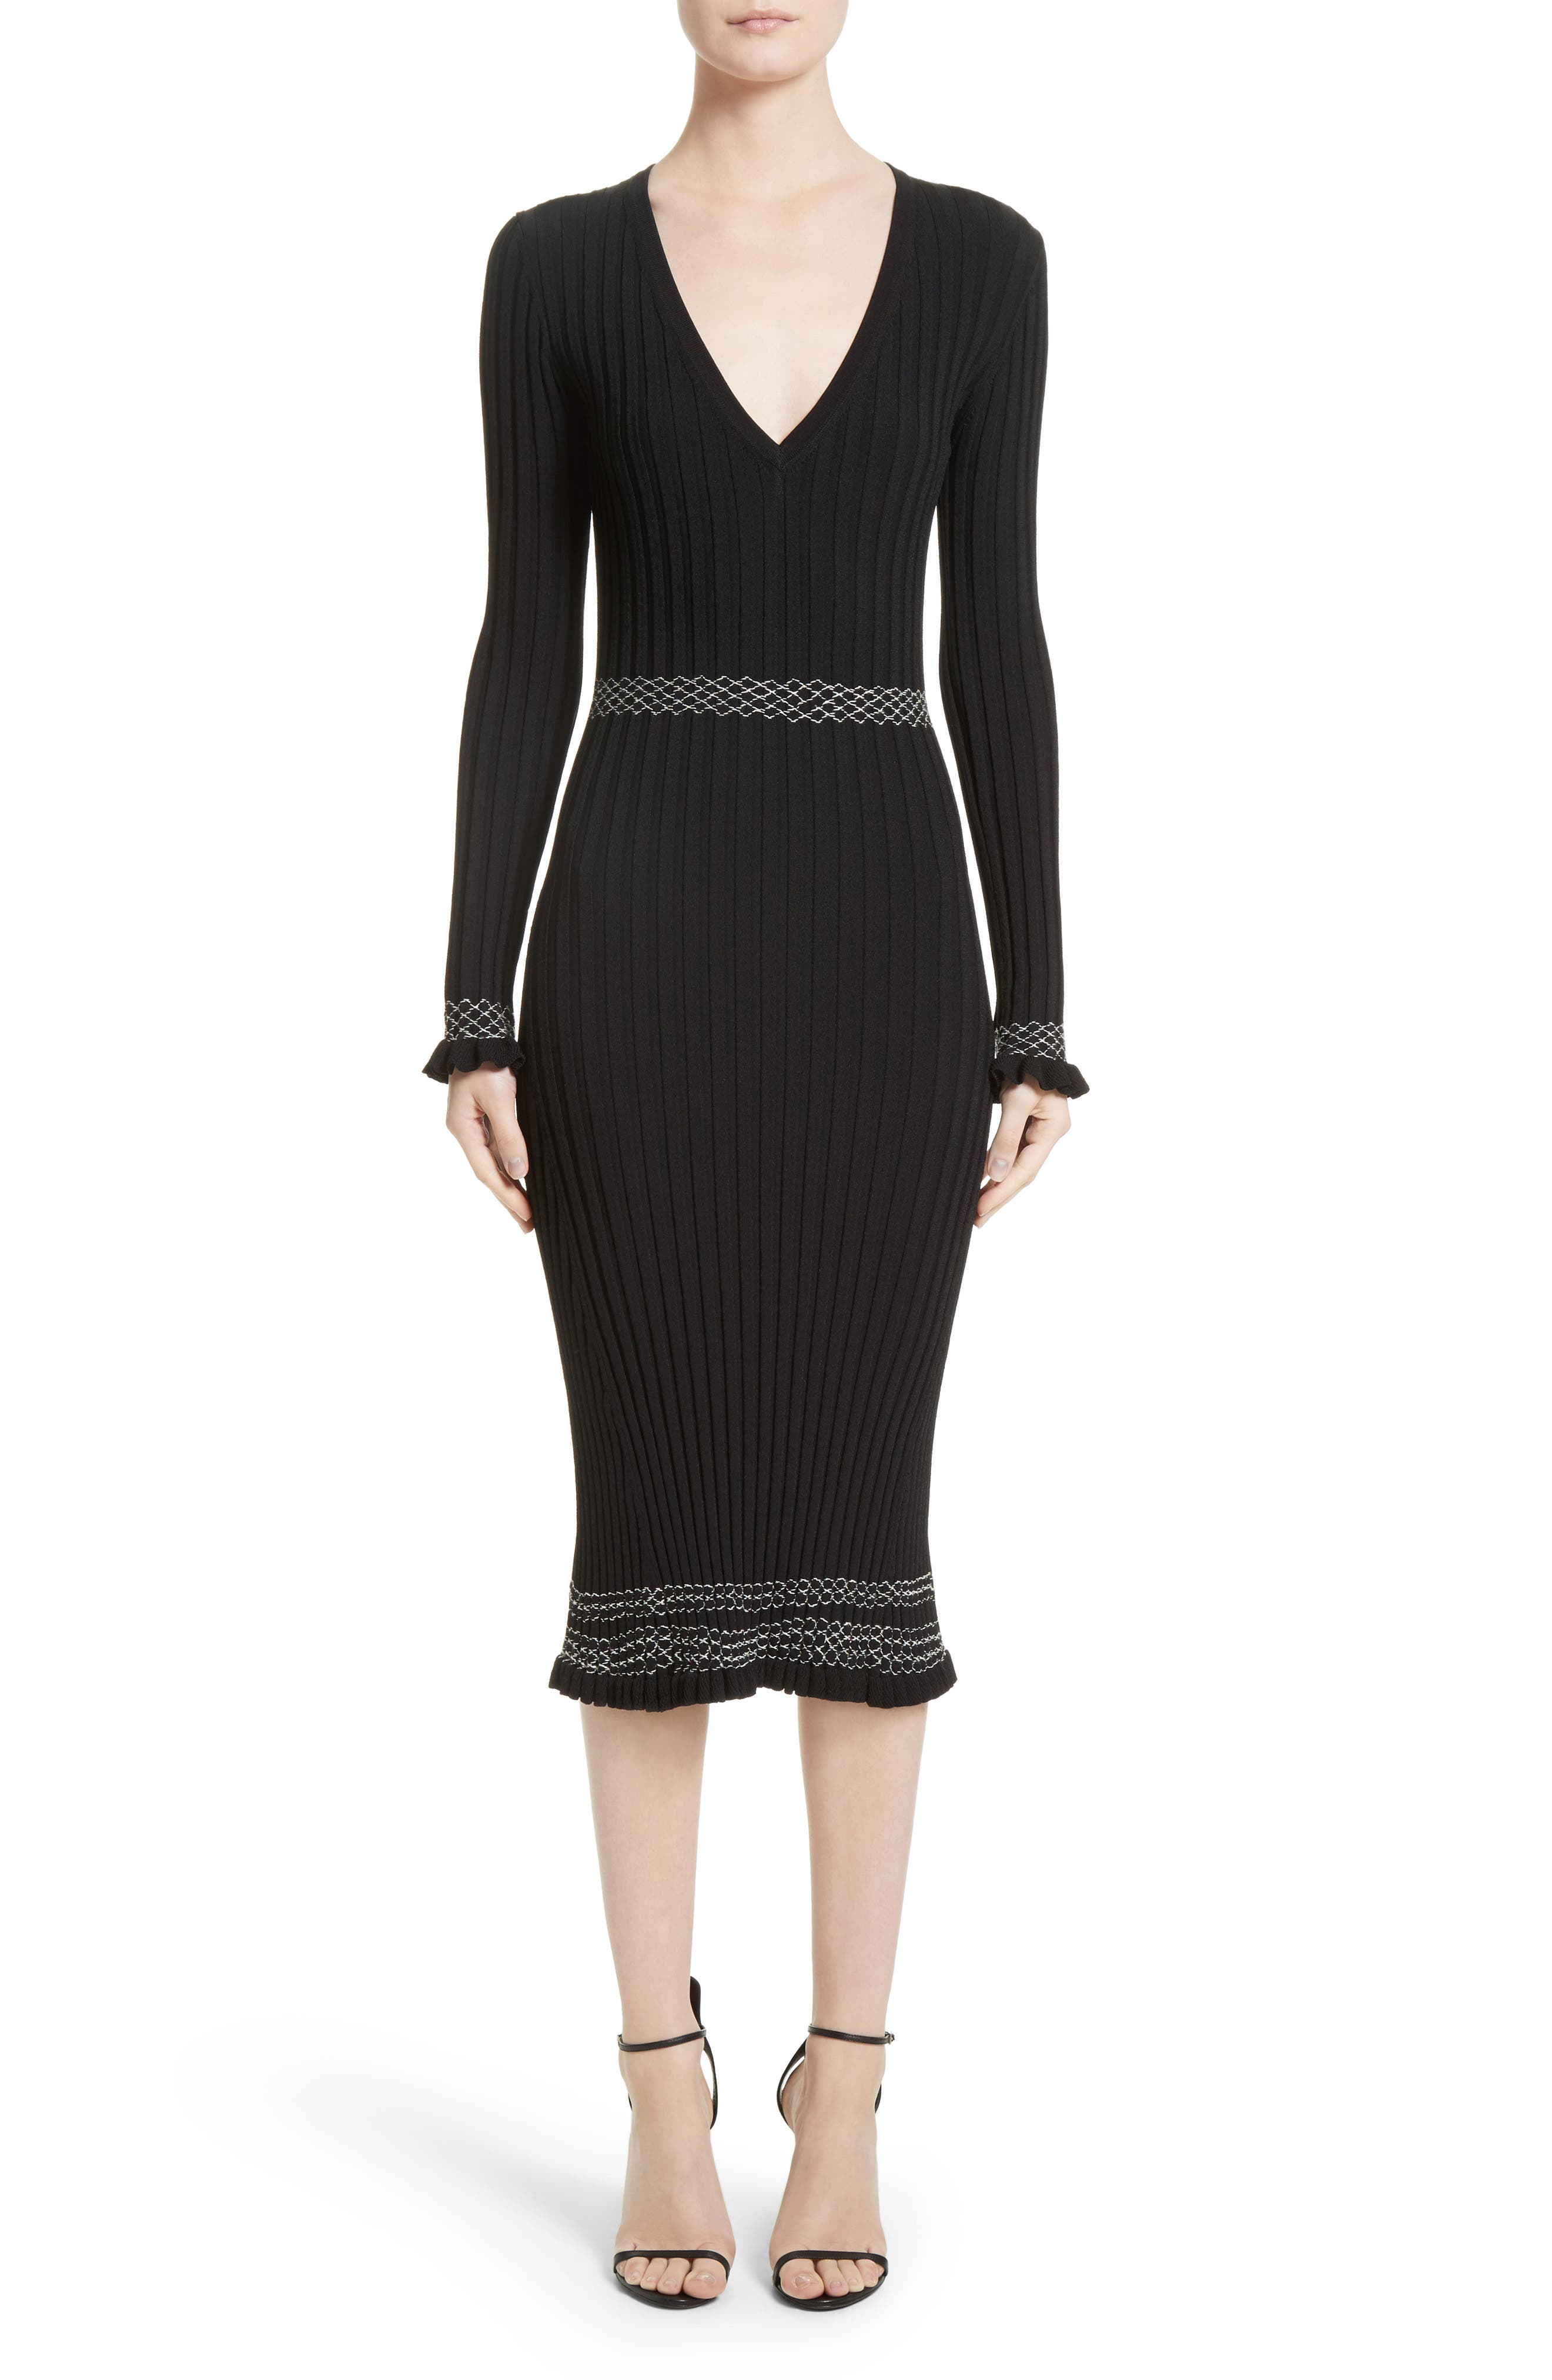 Main Image - Altuzarra Ruffle Hem Knit Dress